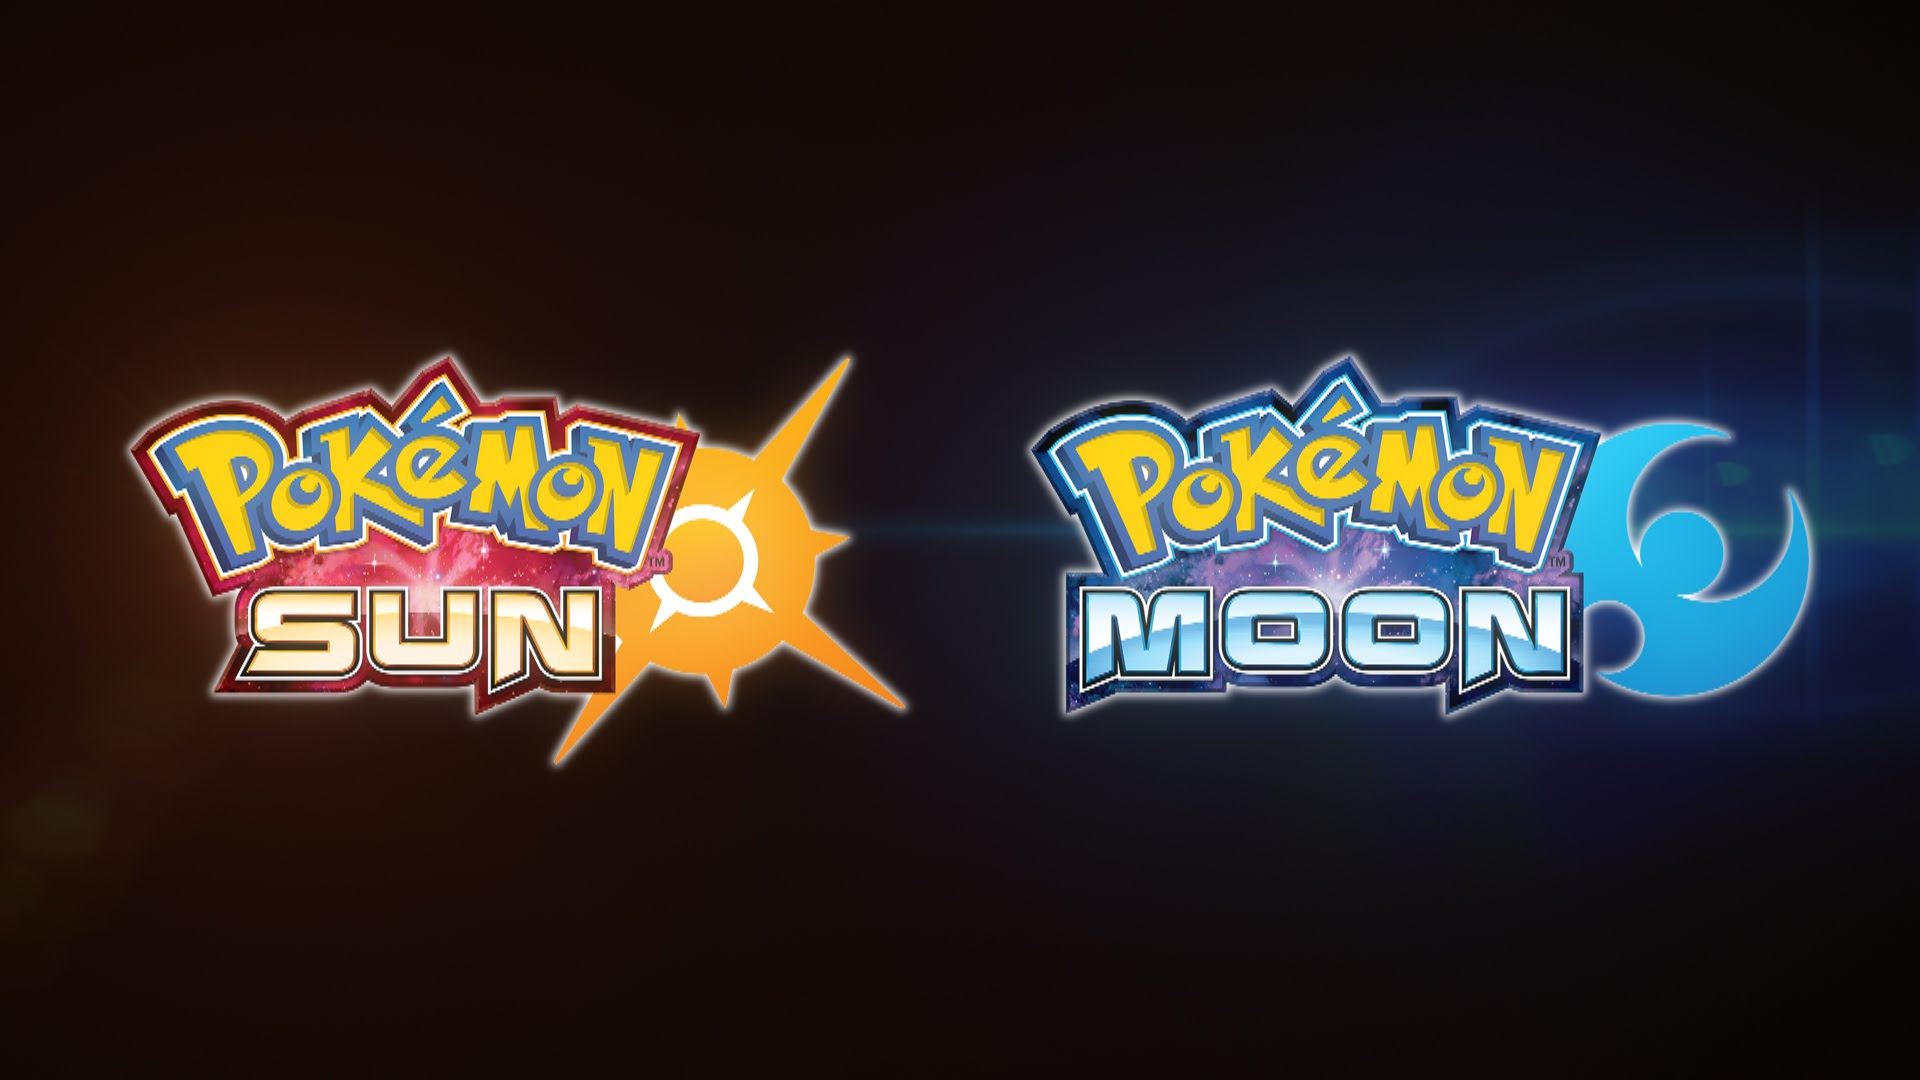 Modojo | Pokémon Sun and Moon Confirmed for Holiday 2016